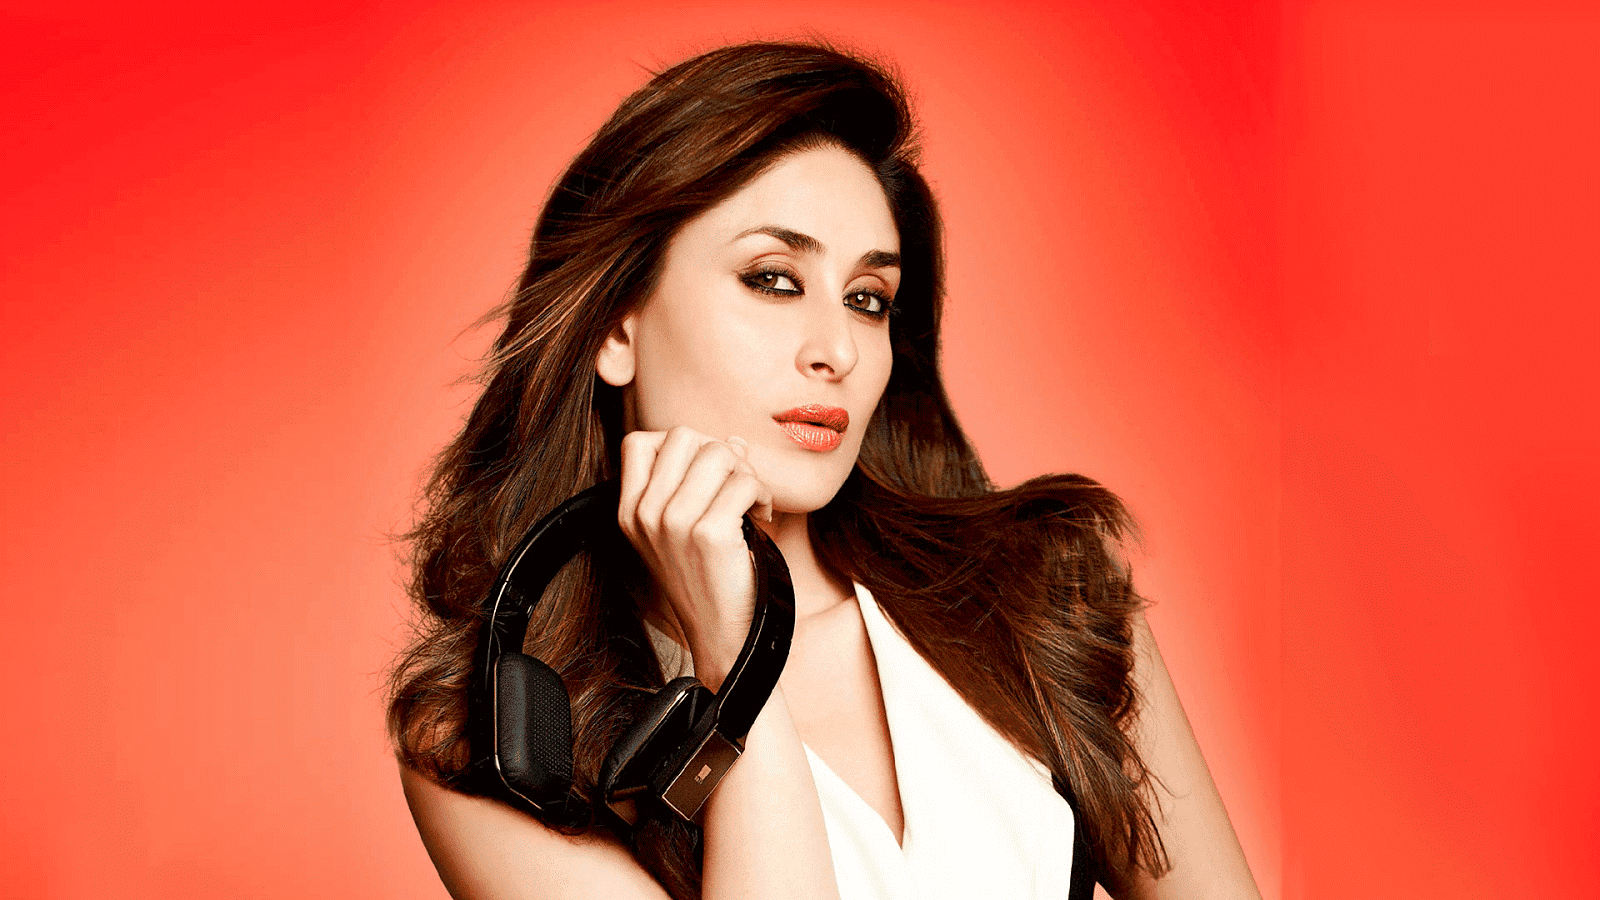 Good Morning Wallpaper Cute Kareena Kapoor Khan Wallpapers Hd Download Free 1080p